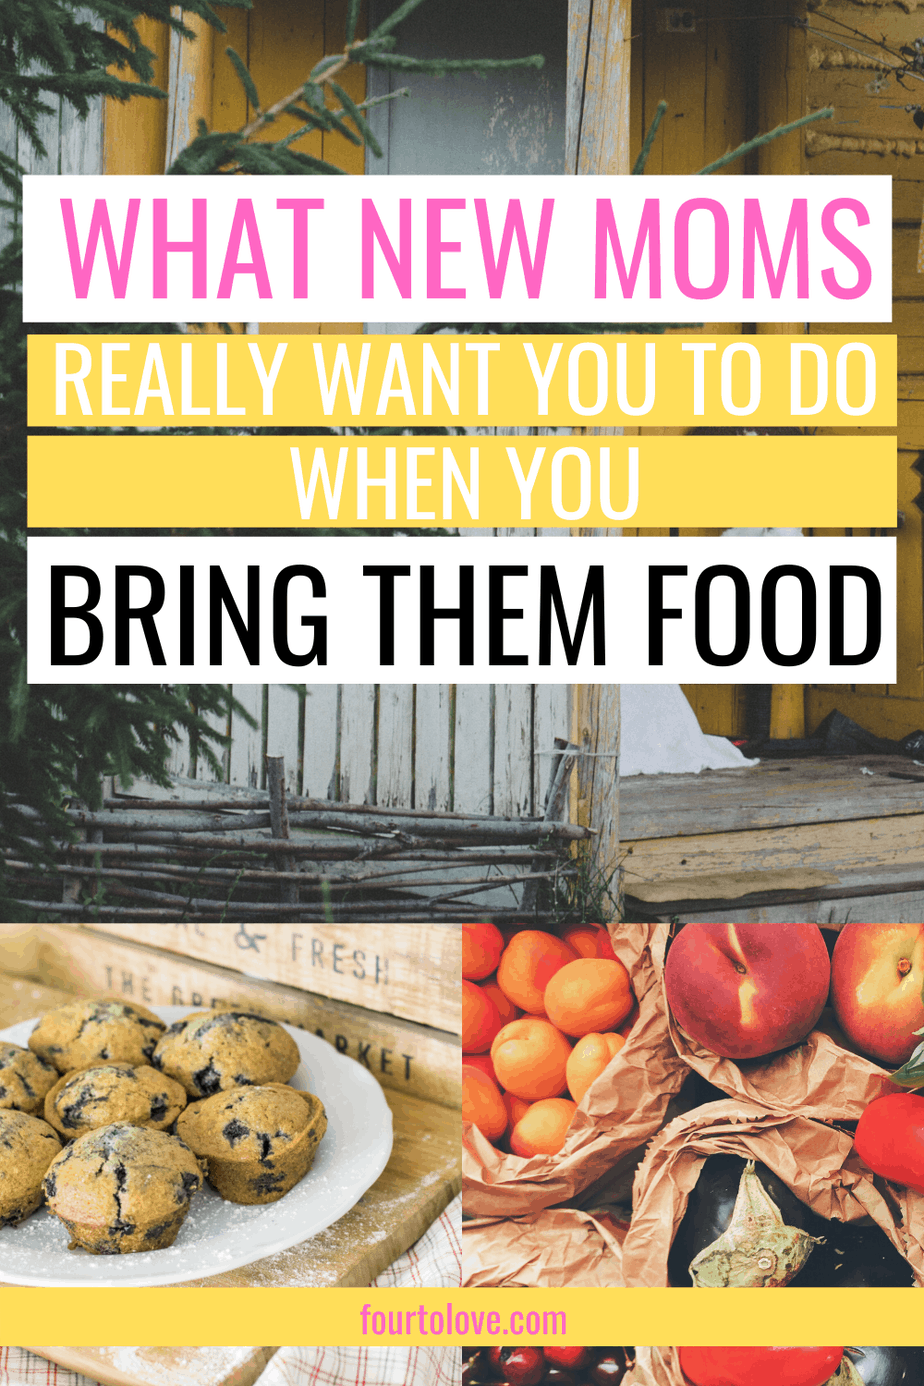 Bringing food to a new mom